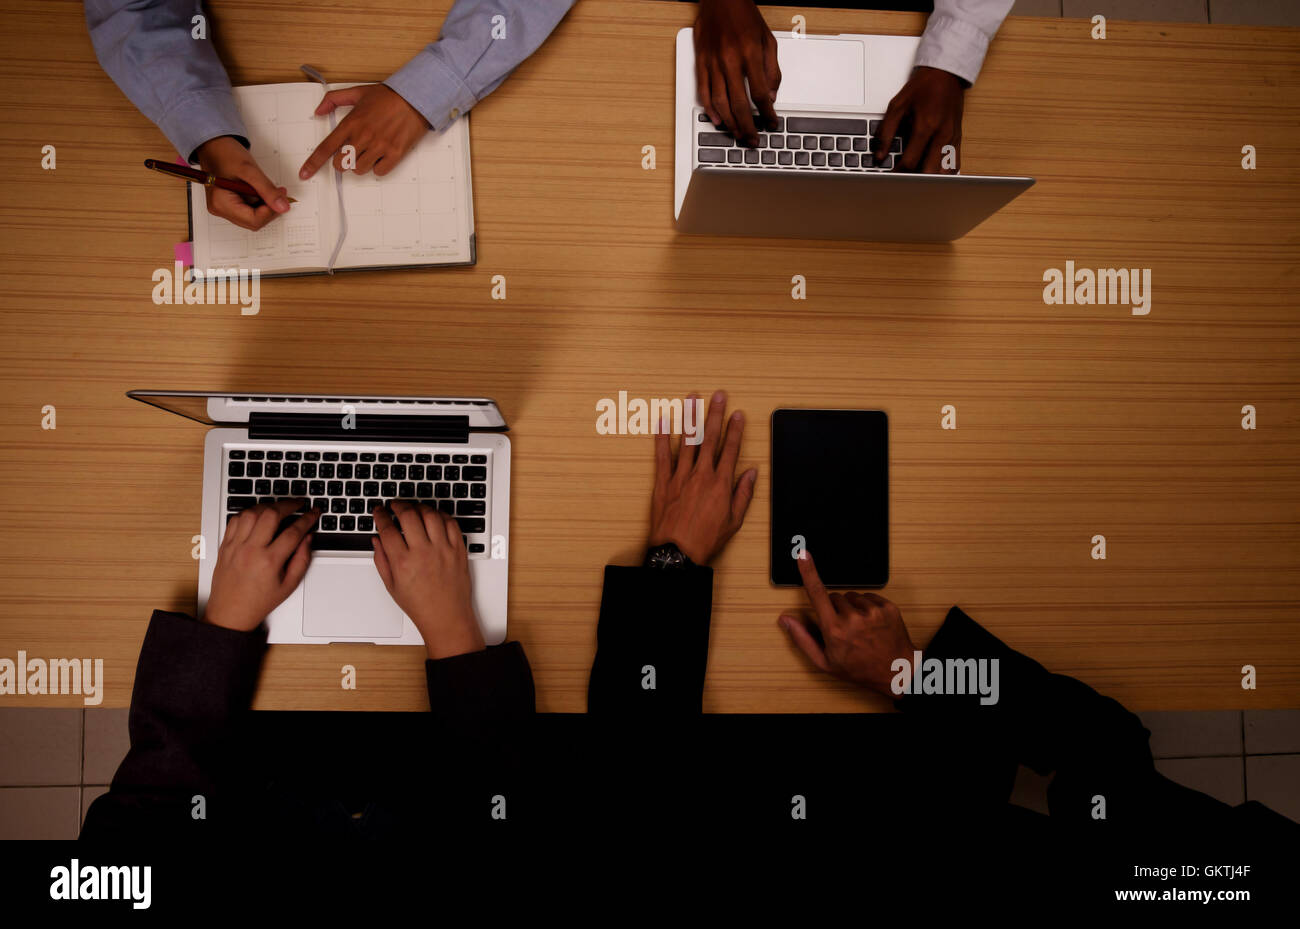 business, plan,designing, unity, teamwork,talking, startup,cooperation,togetherness, connection, paperwork, strategy, - Stock Image